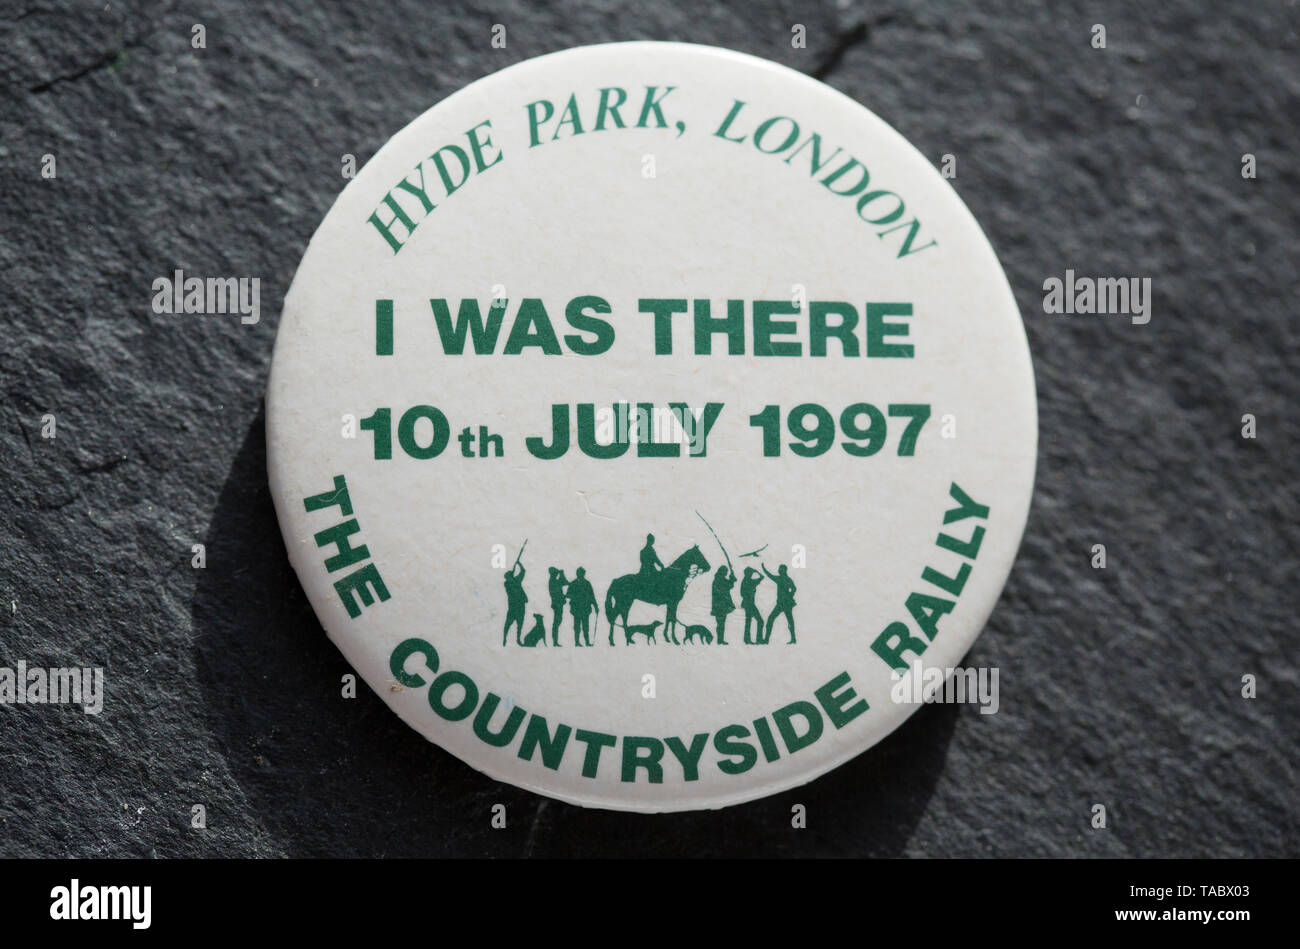 A pro-hunting badge that was made for the 1997 Countryside Rally in Hyde Park in relation to the proposal to ban hunting with dogs in the UK. The rall - Stock Image